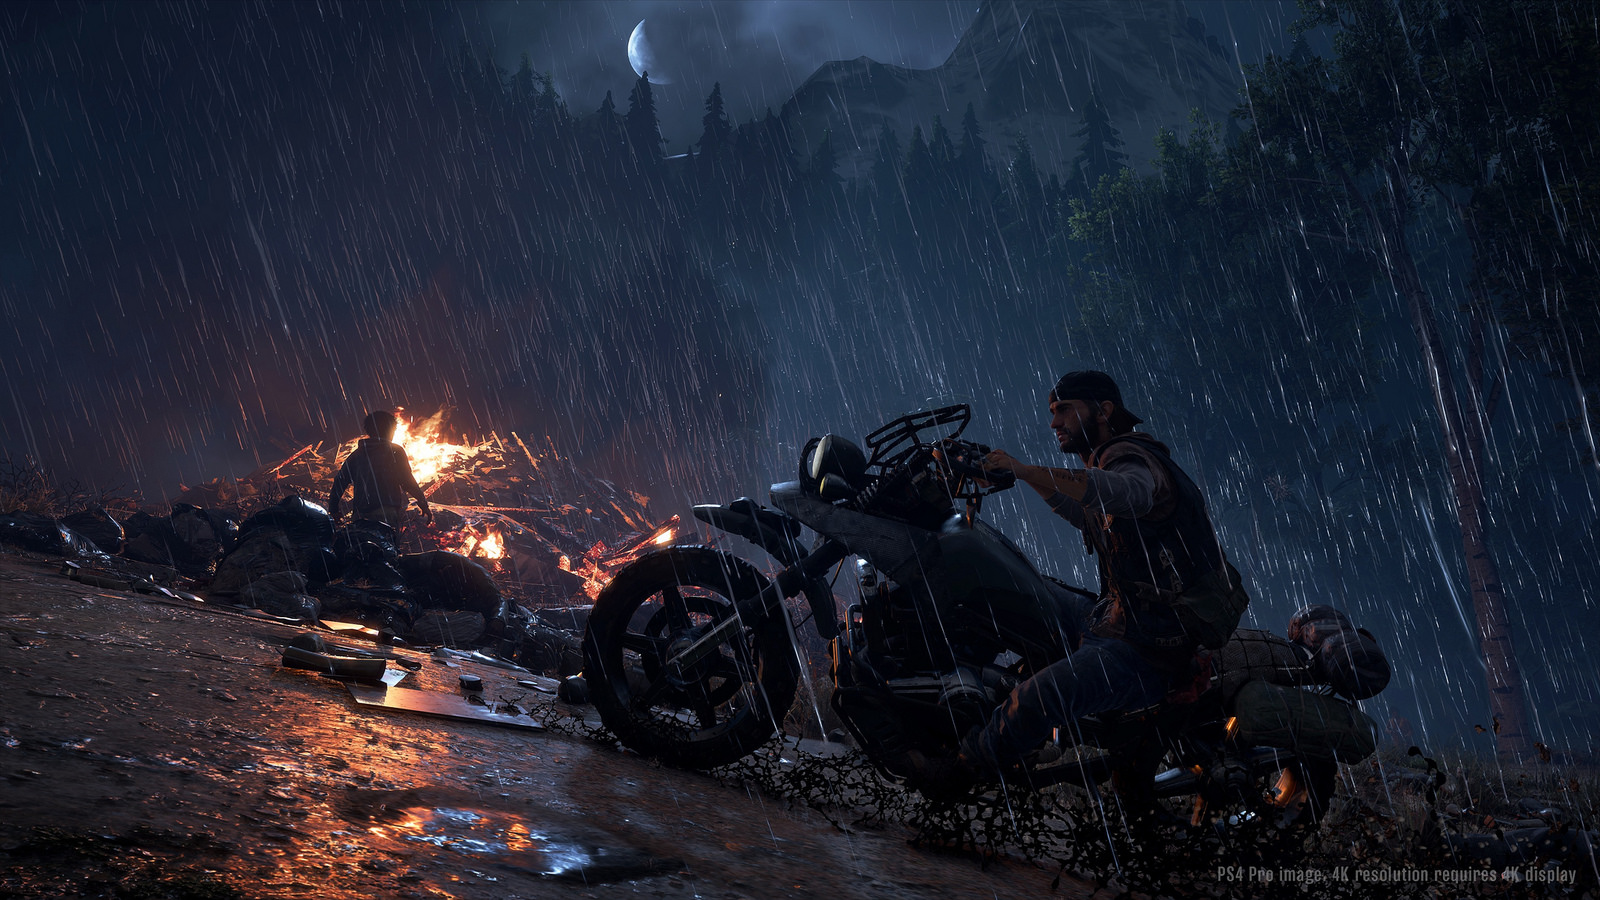 Un nuovo trailer per l'open world di Days Gone